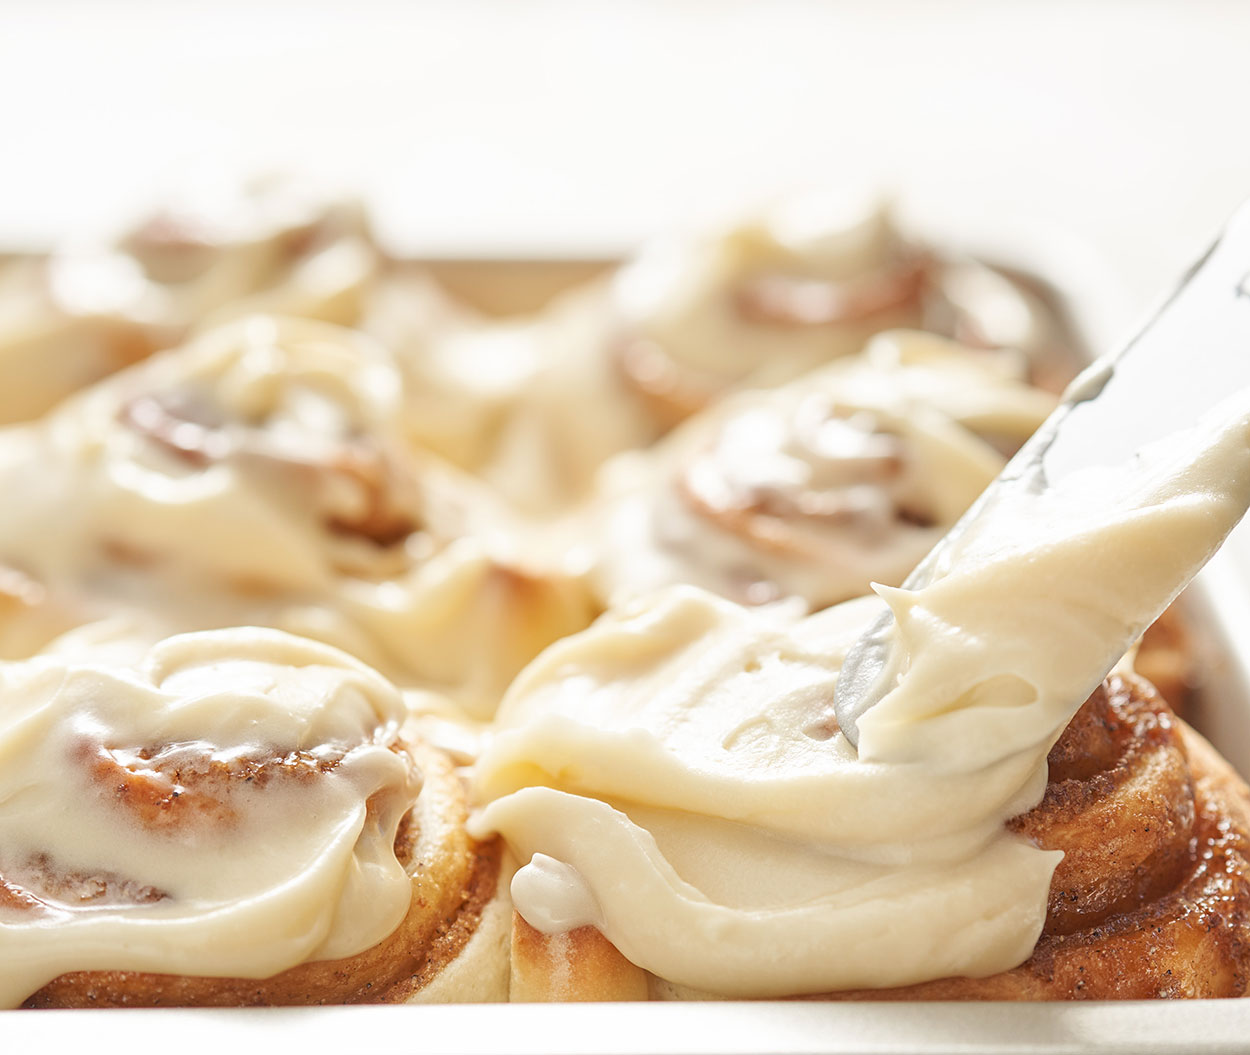 Cardamom Bun with Cream Cheese Frosting